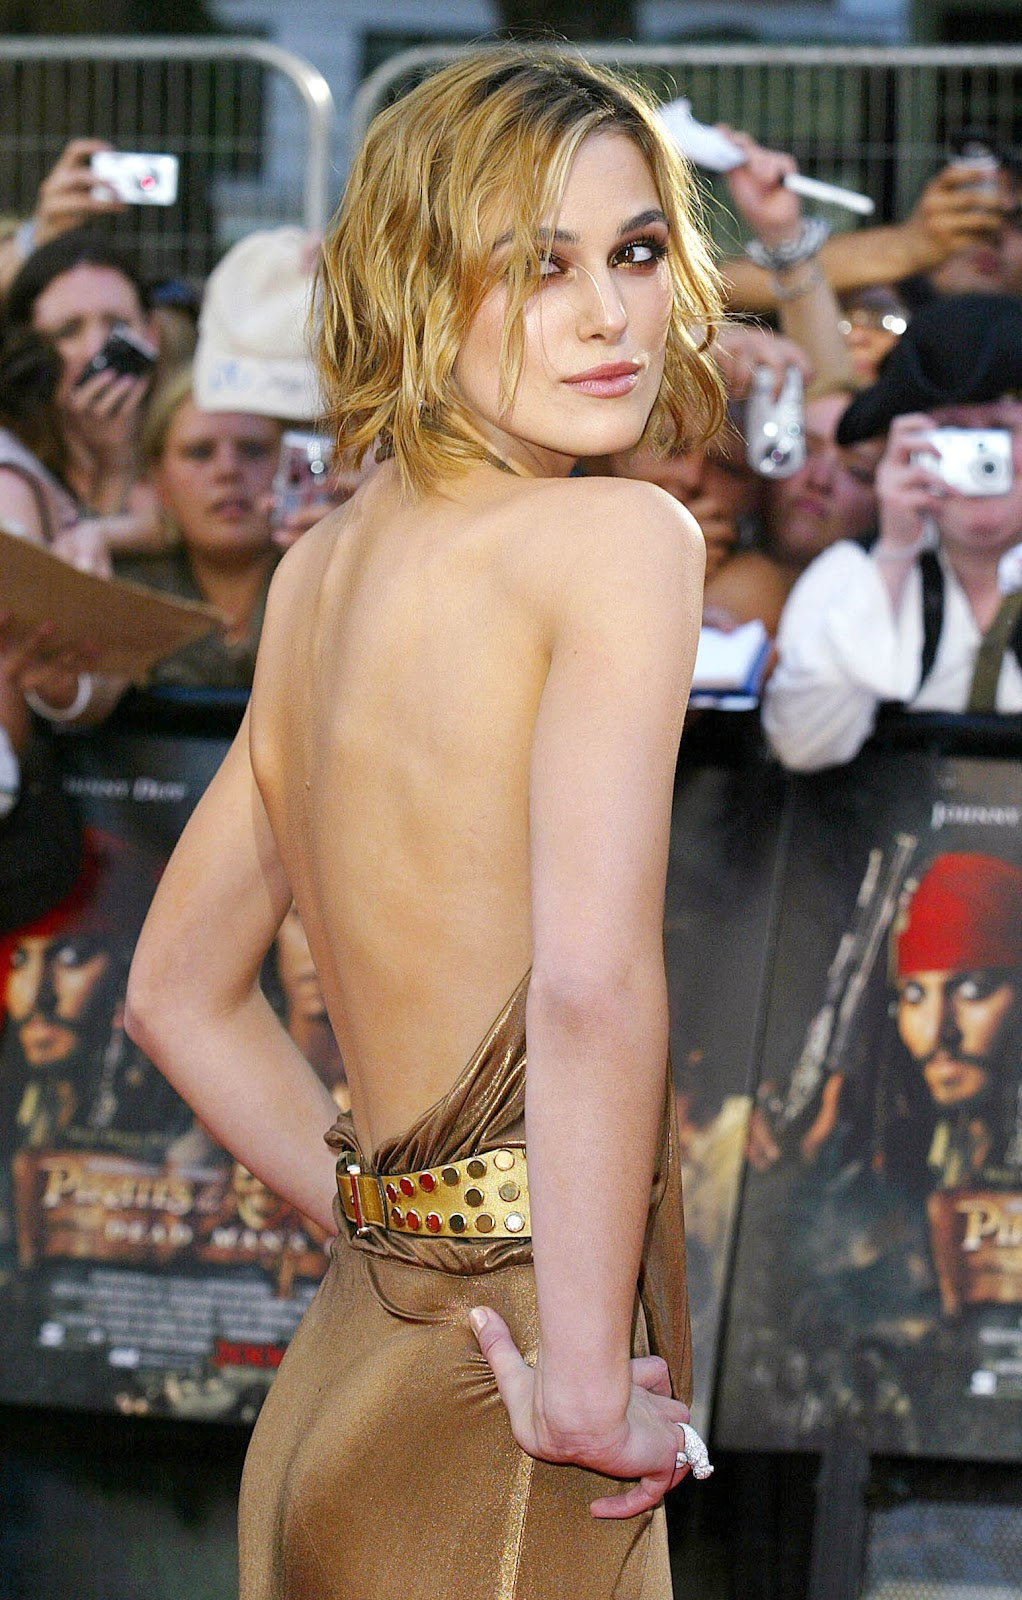 Hot and sexy keira knightley pics in backless dress